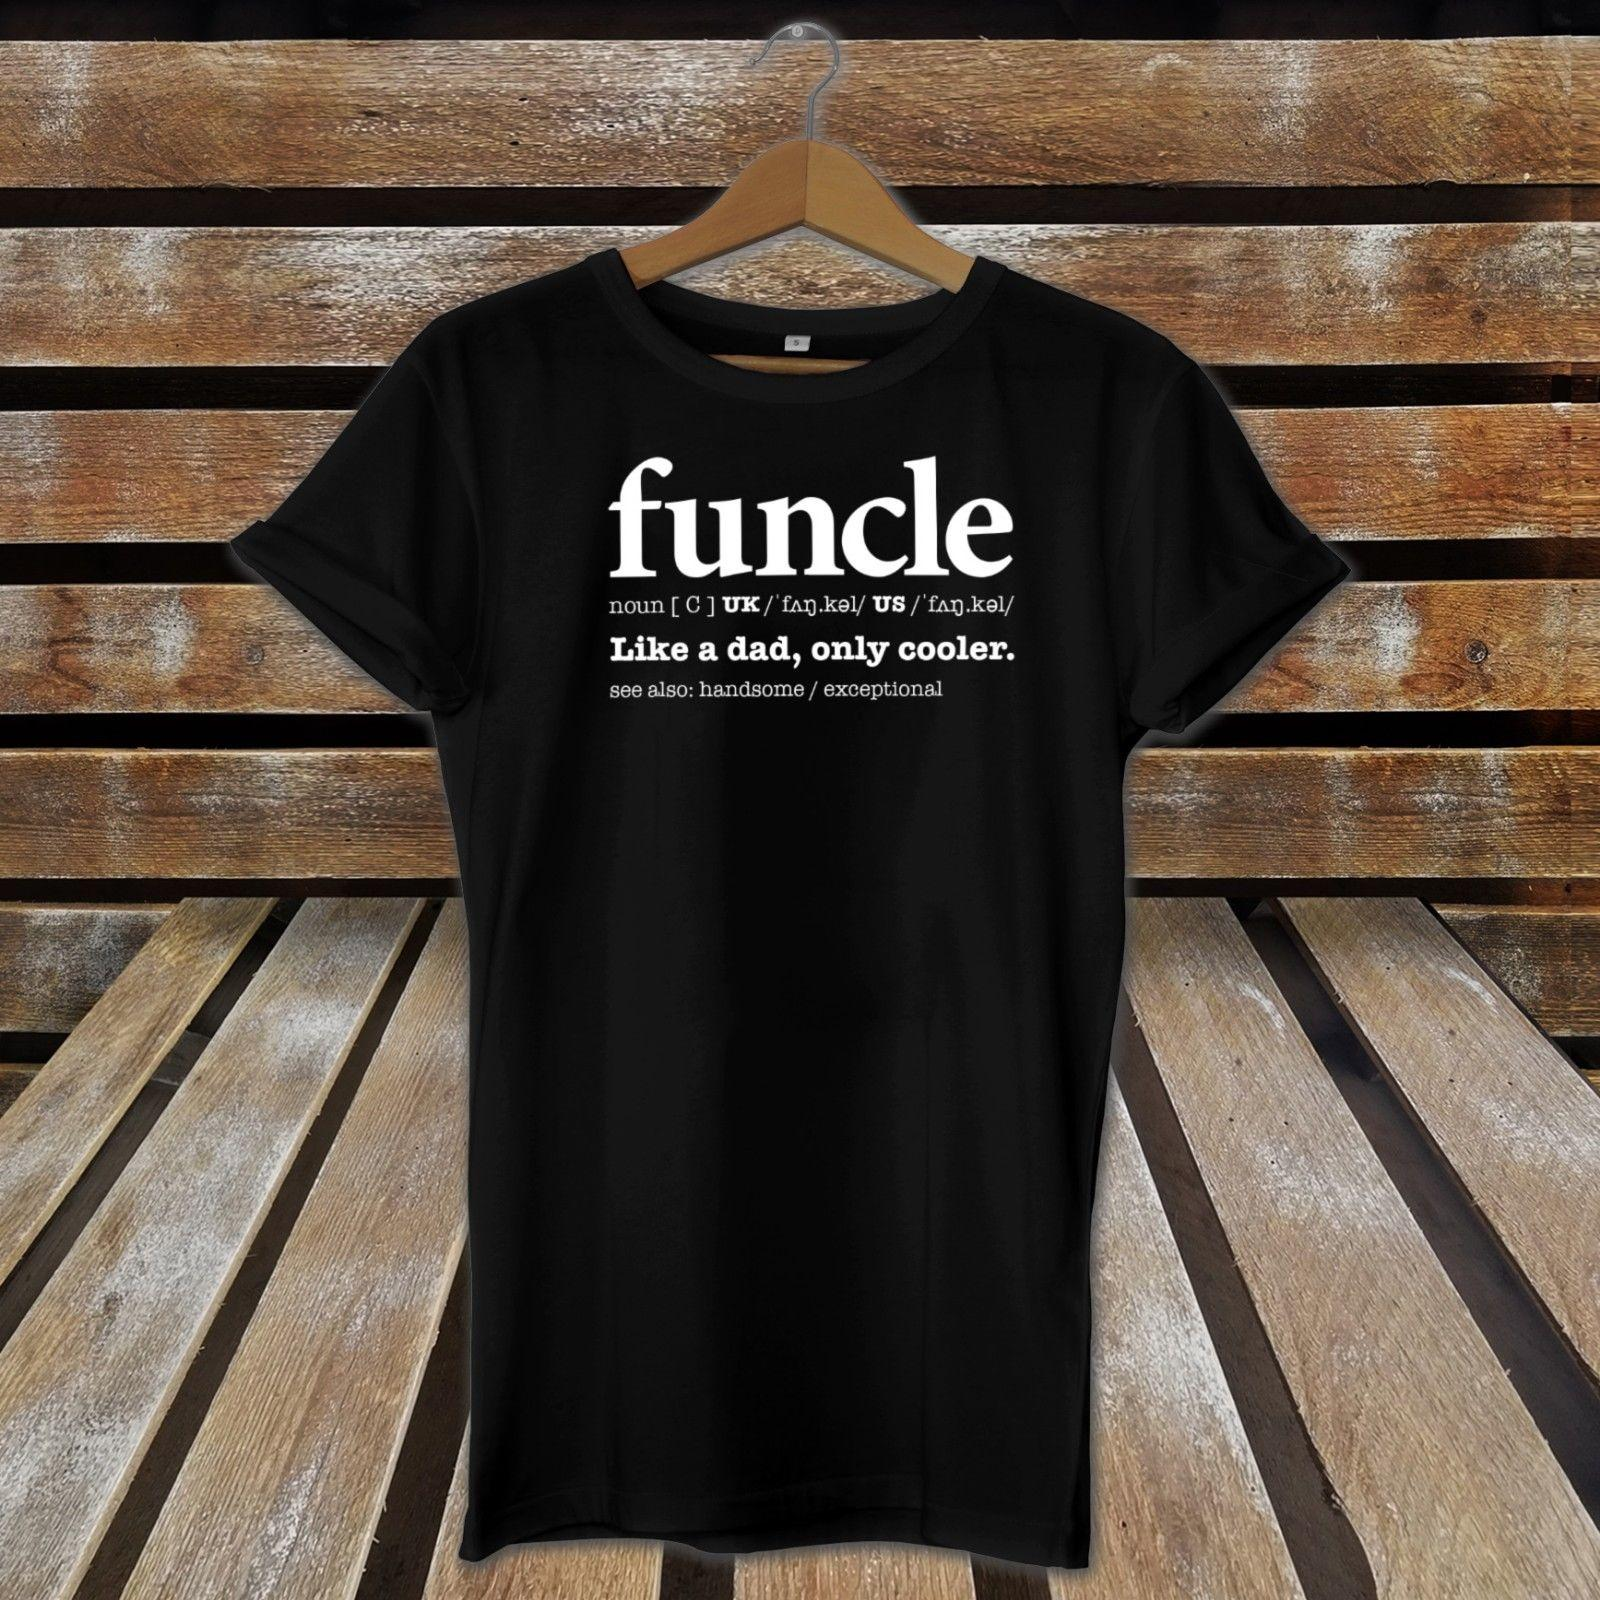 6ad1b143 Funcle Like A Dad Only Cooler Novelty Cute Father'S Day T Shirt / Top For  Uncle Funny Unisex Casual Tshirt Gift Good T Shirt Sites One Tee A Day From  ...